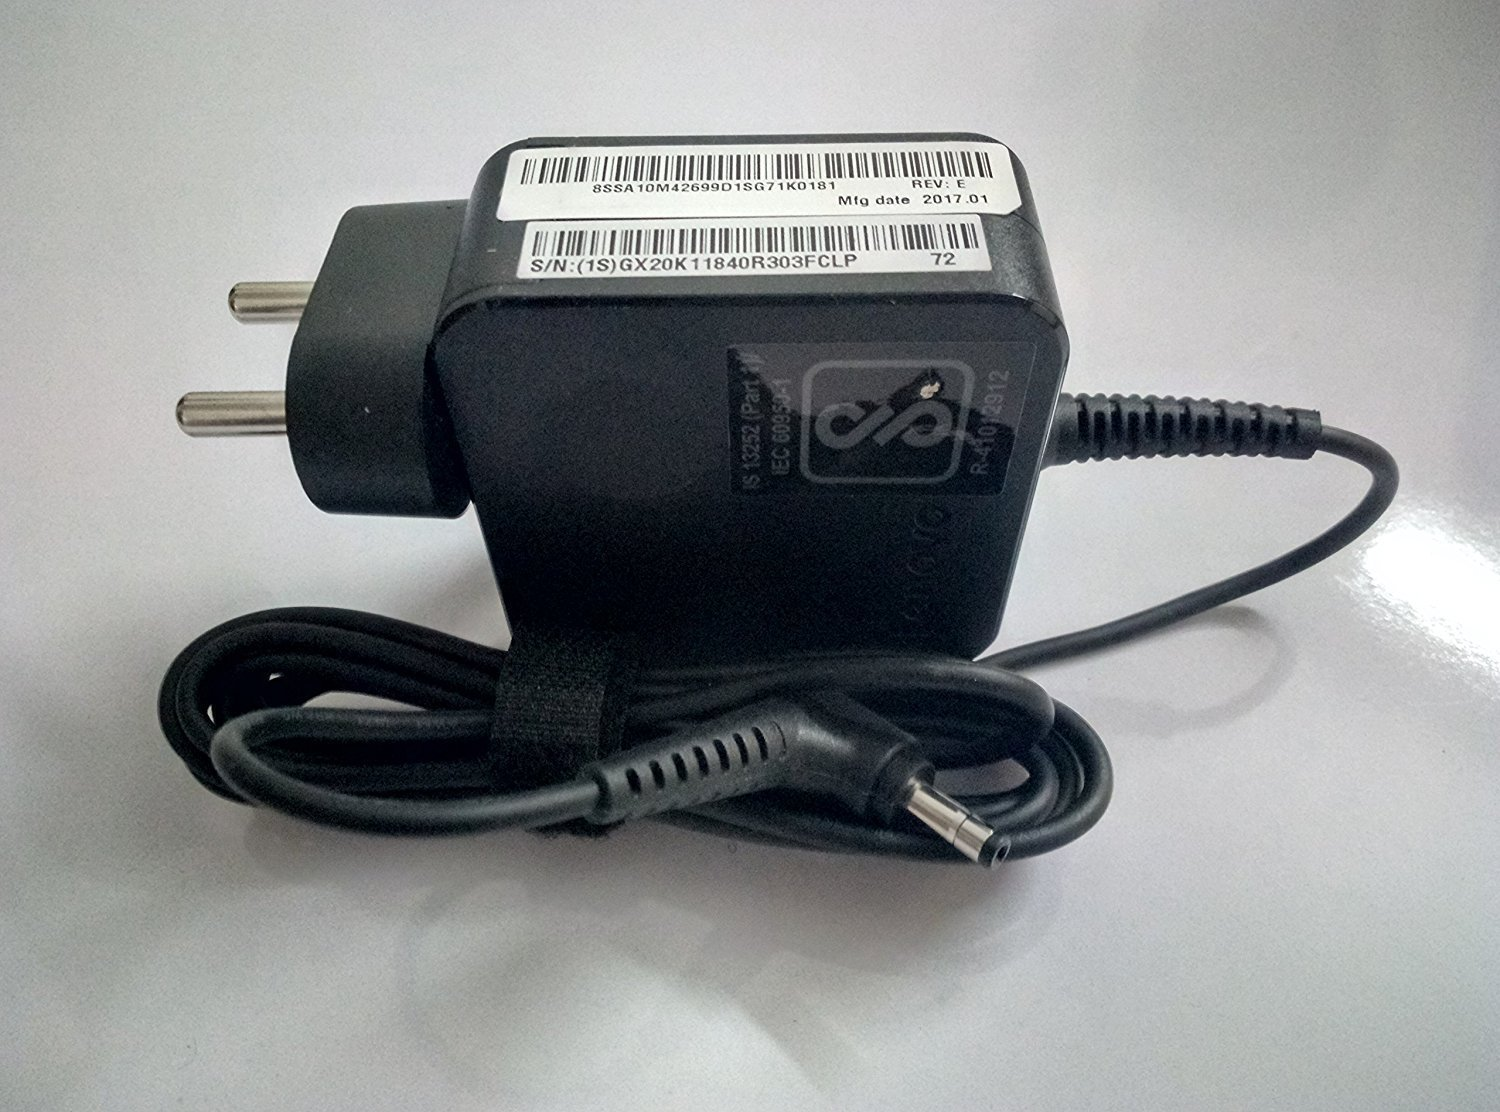 Lenovo 45W AC Wall Adapter, Laptop Charger, IN GX20K11840 HSN:85043100